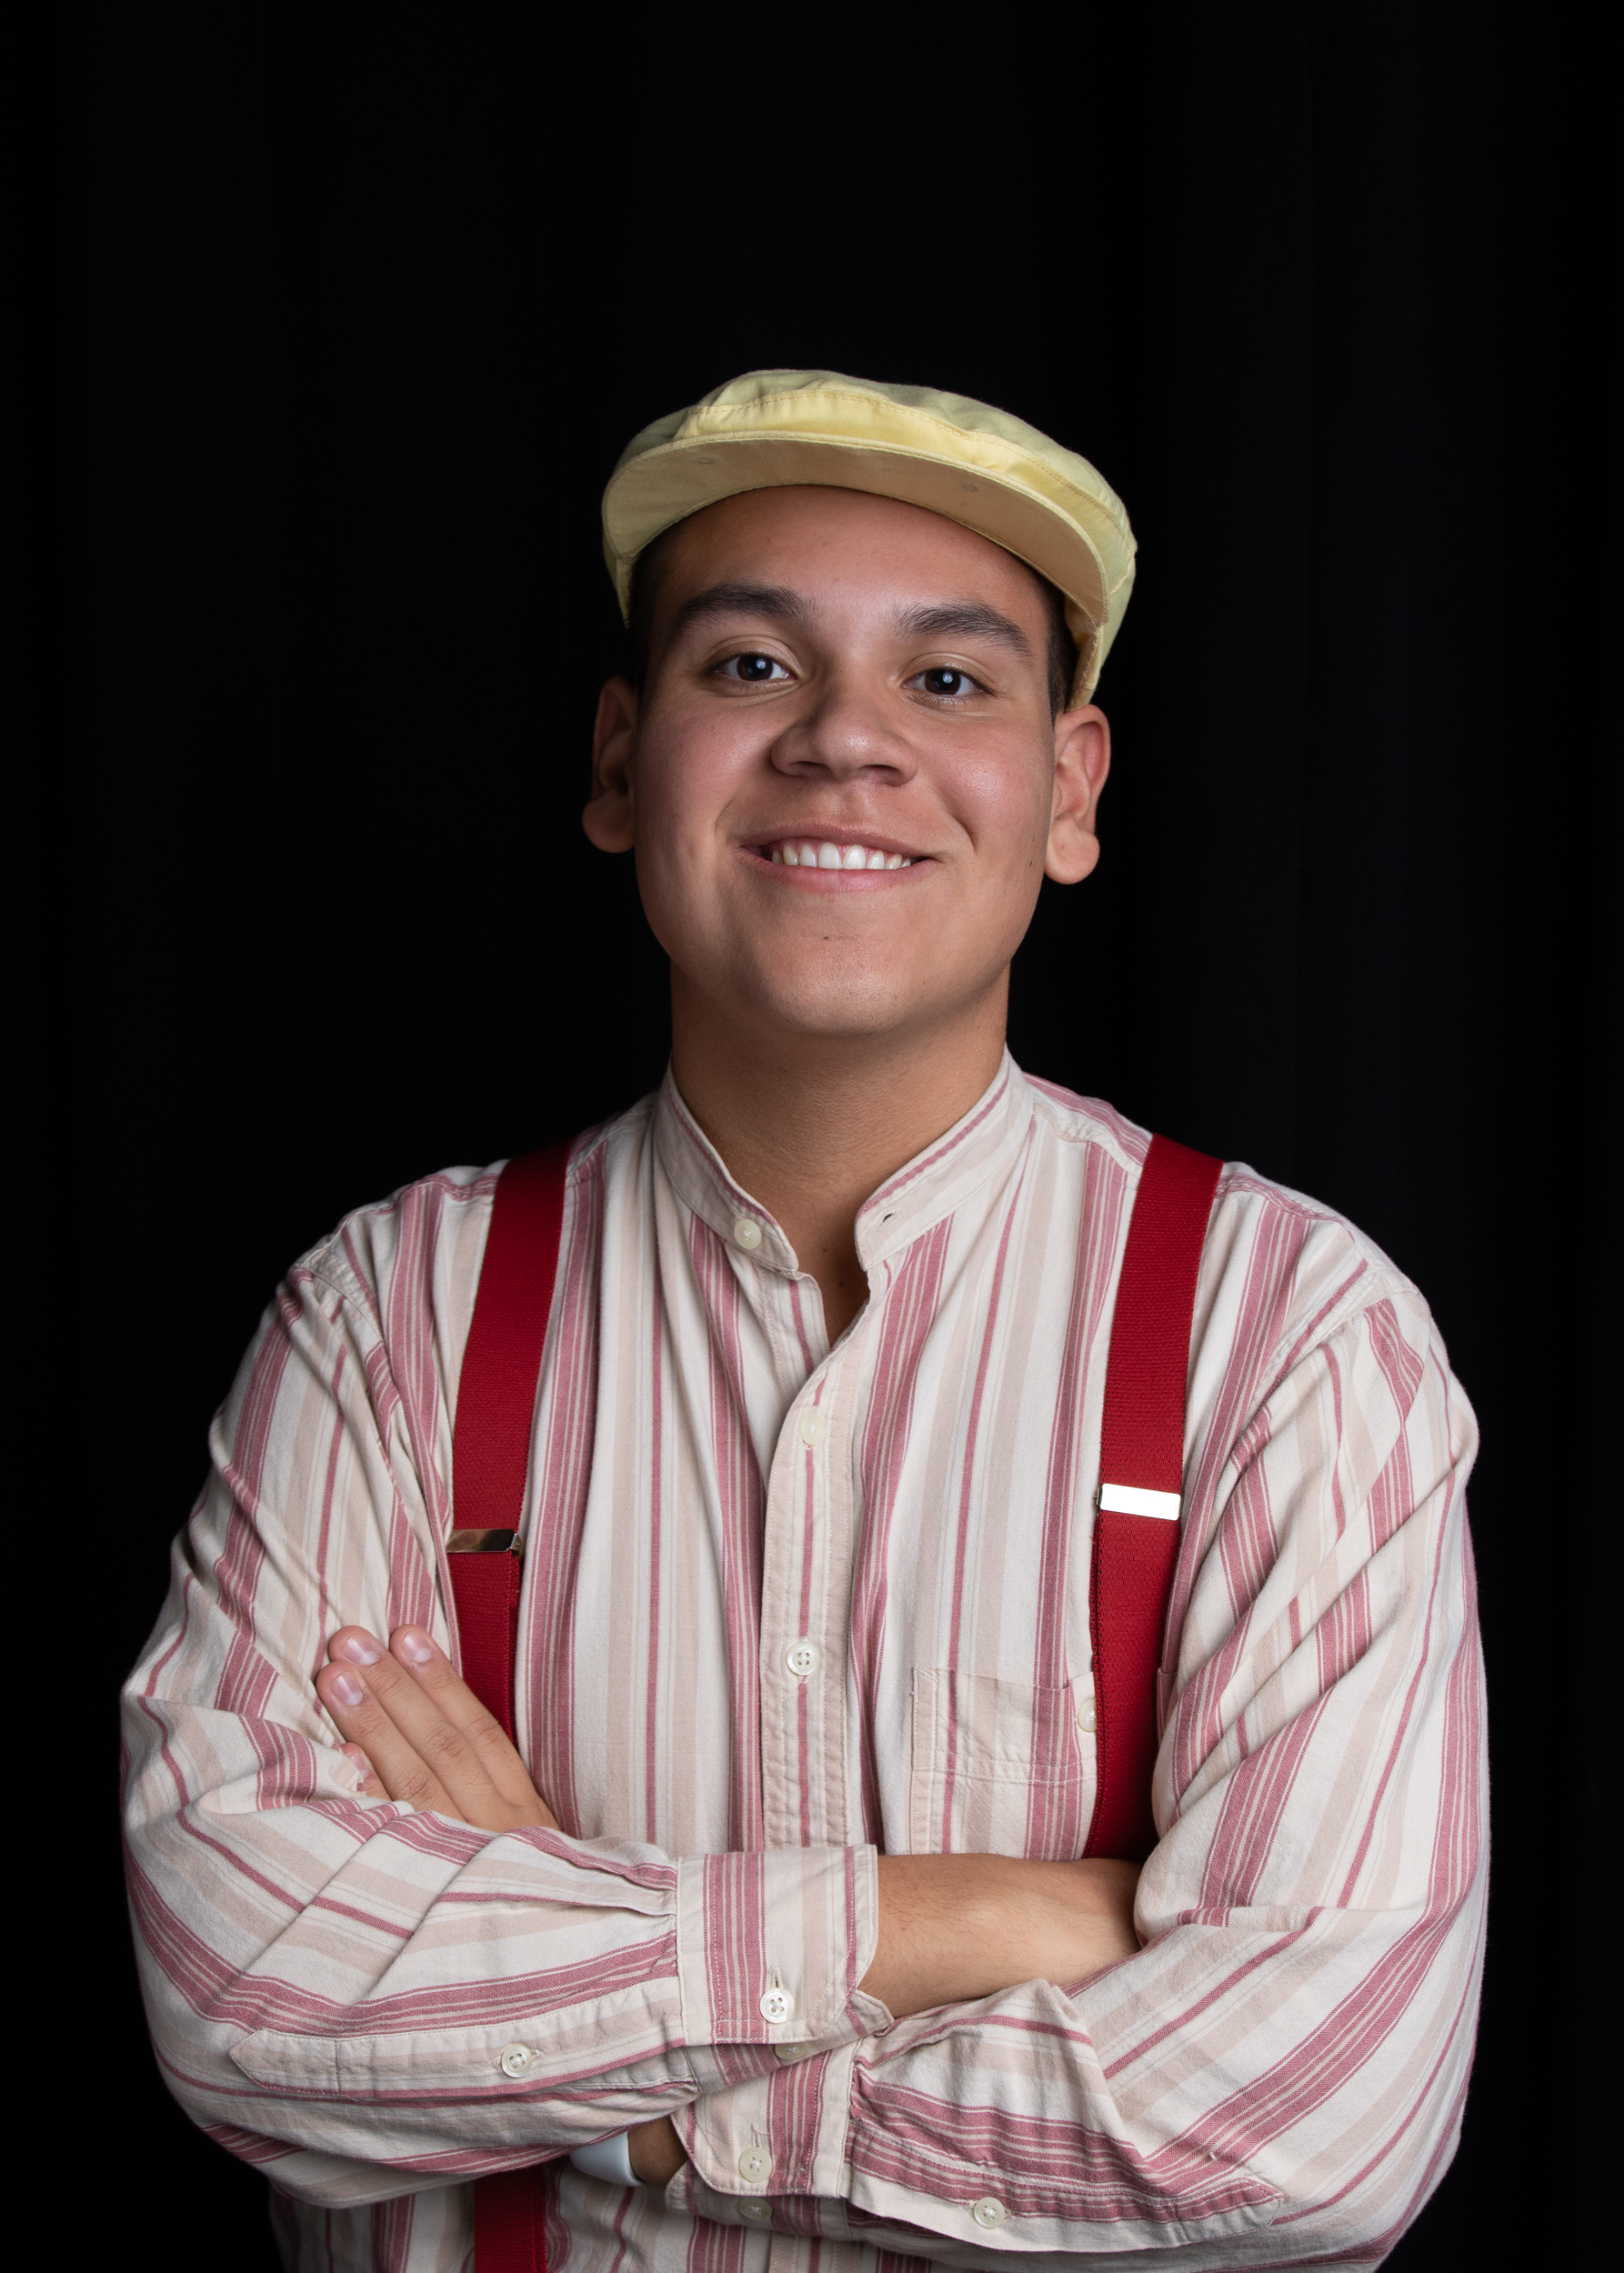 Music Man Headshots 2 - 10.jpg